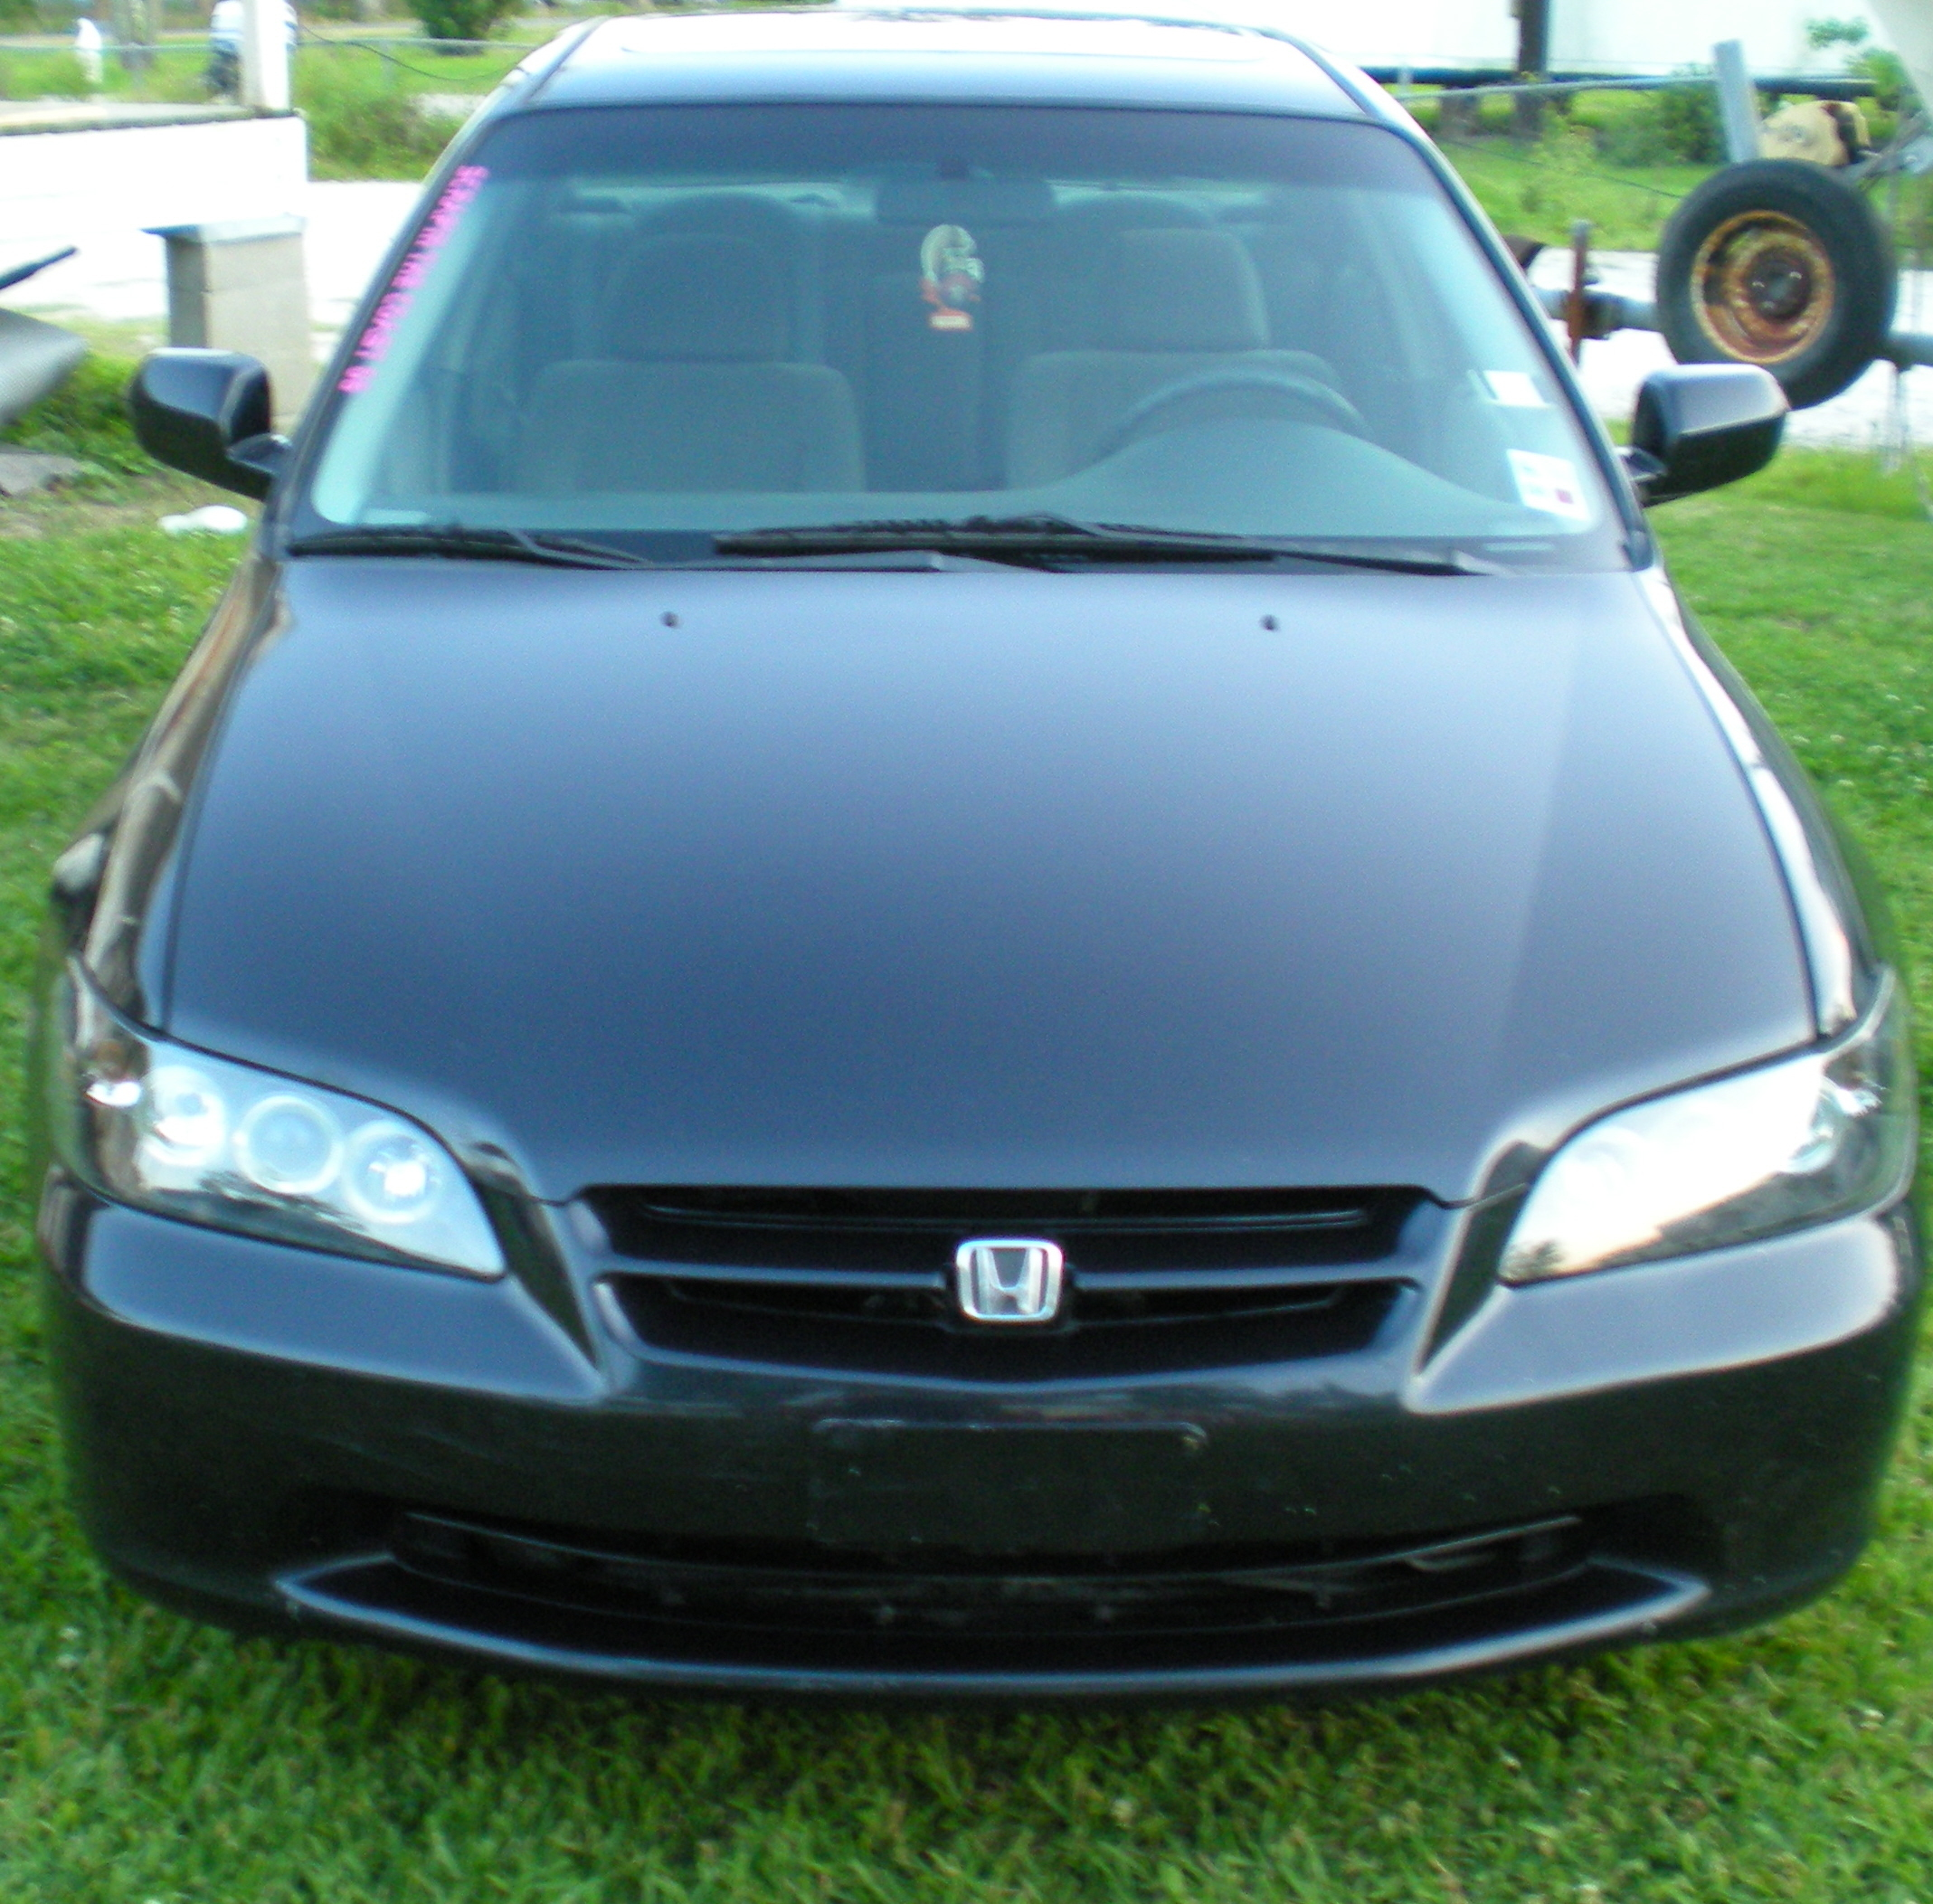 Honda-gurl 2000 Honda Accord